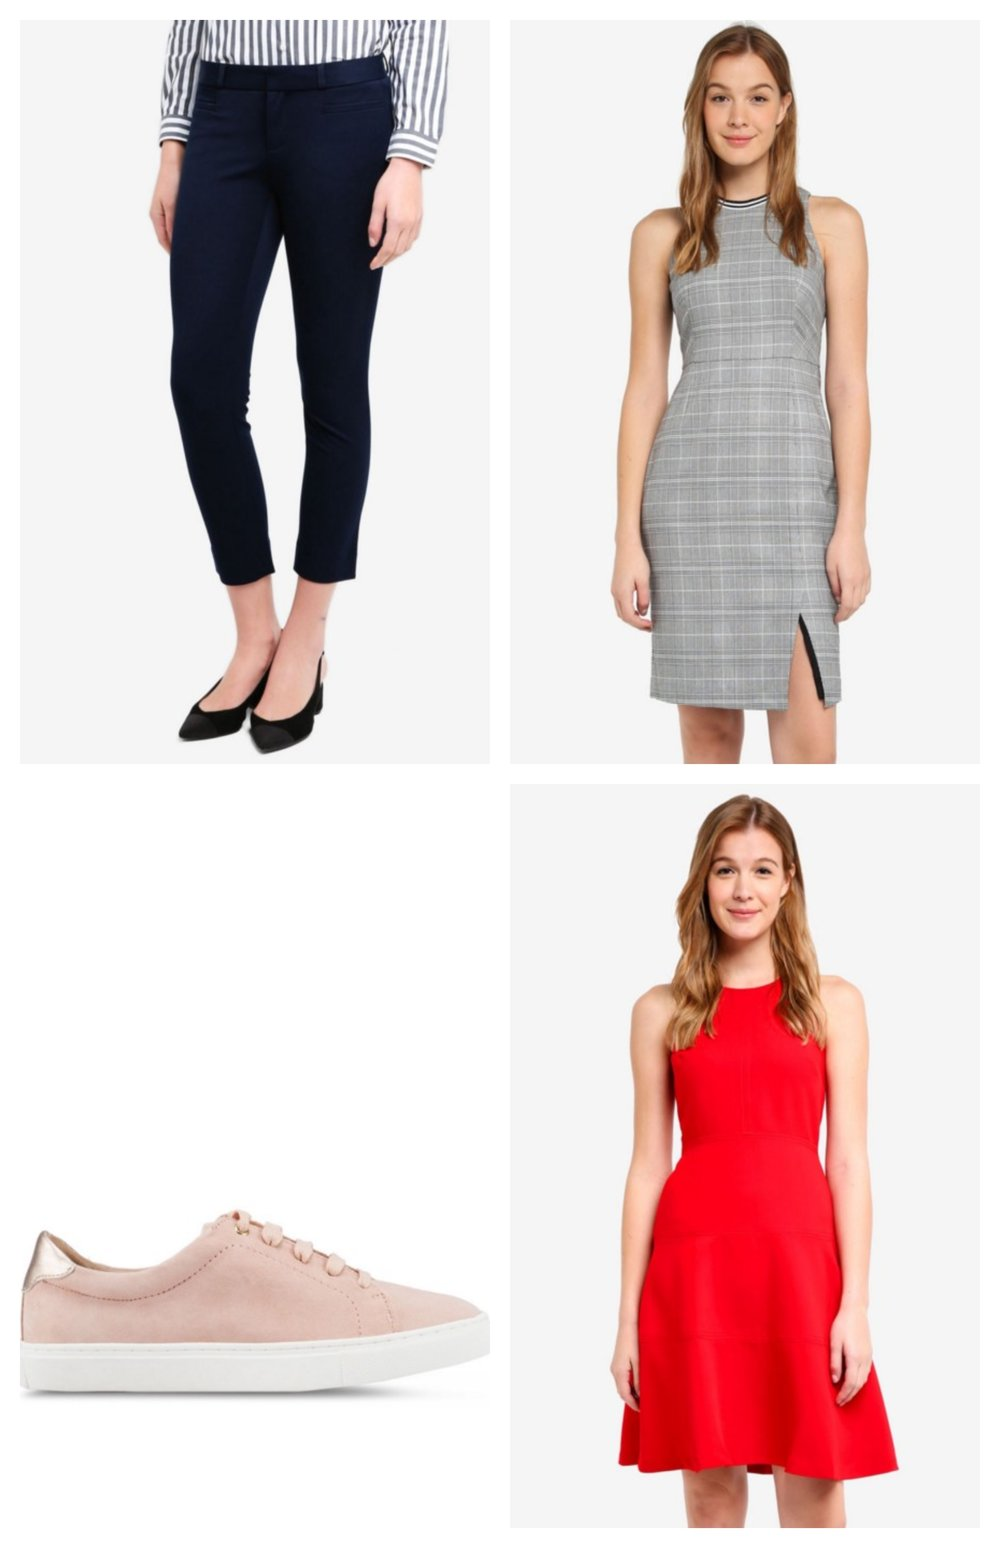 Clockwise from top left:  Sloan Solids Trousers  |  Stretch Racer-Neck Sheath Dress  |  Racerback Fit & Flare Dress  |  Essential Sneakers